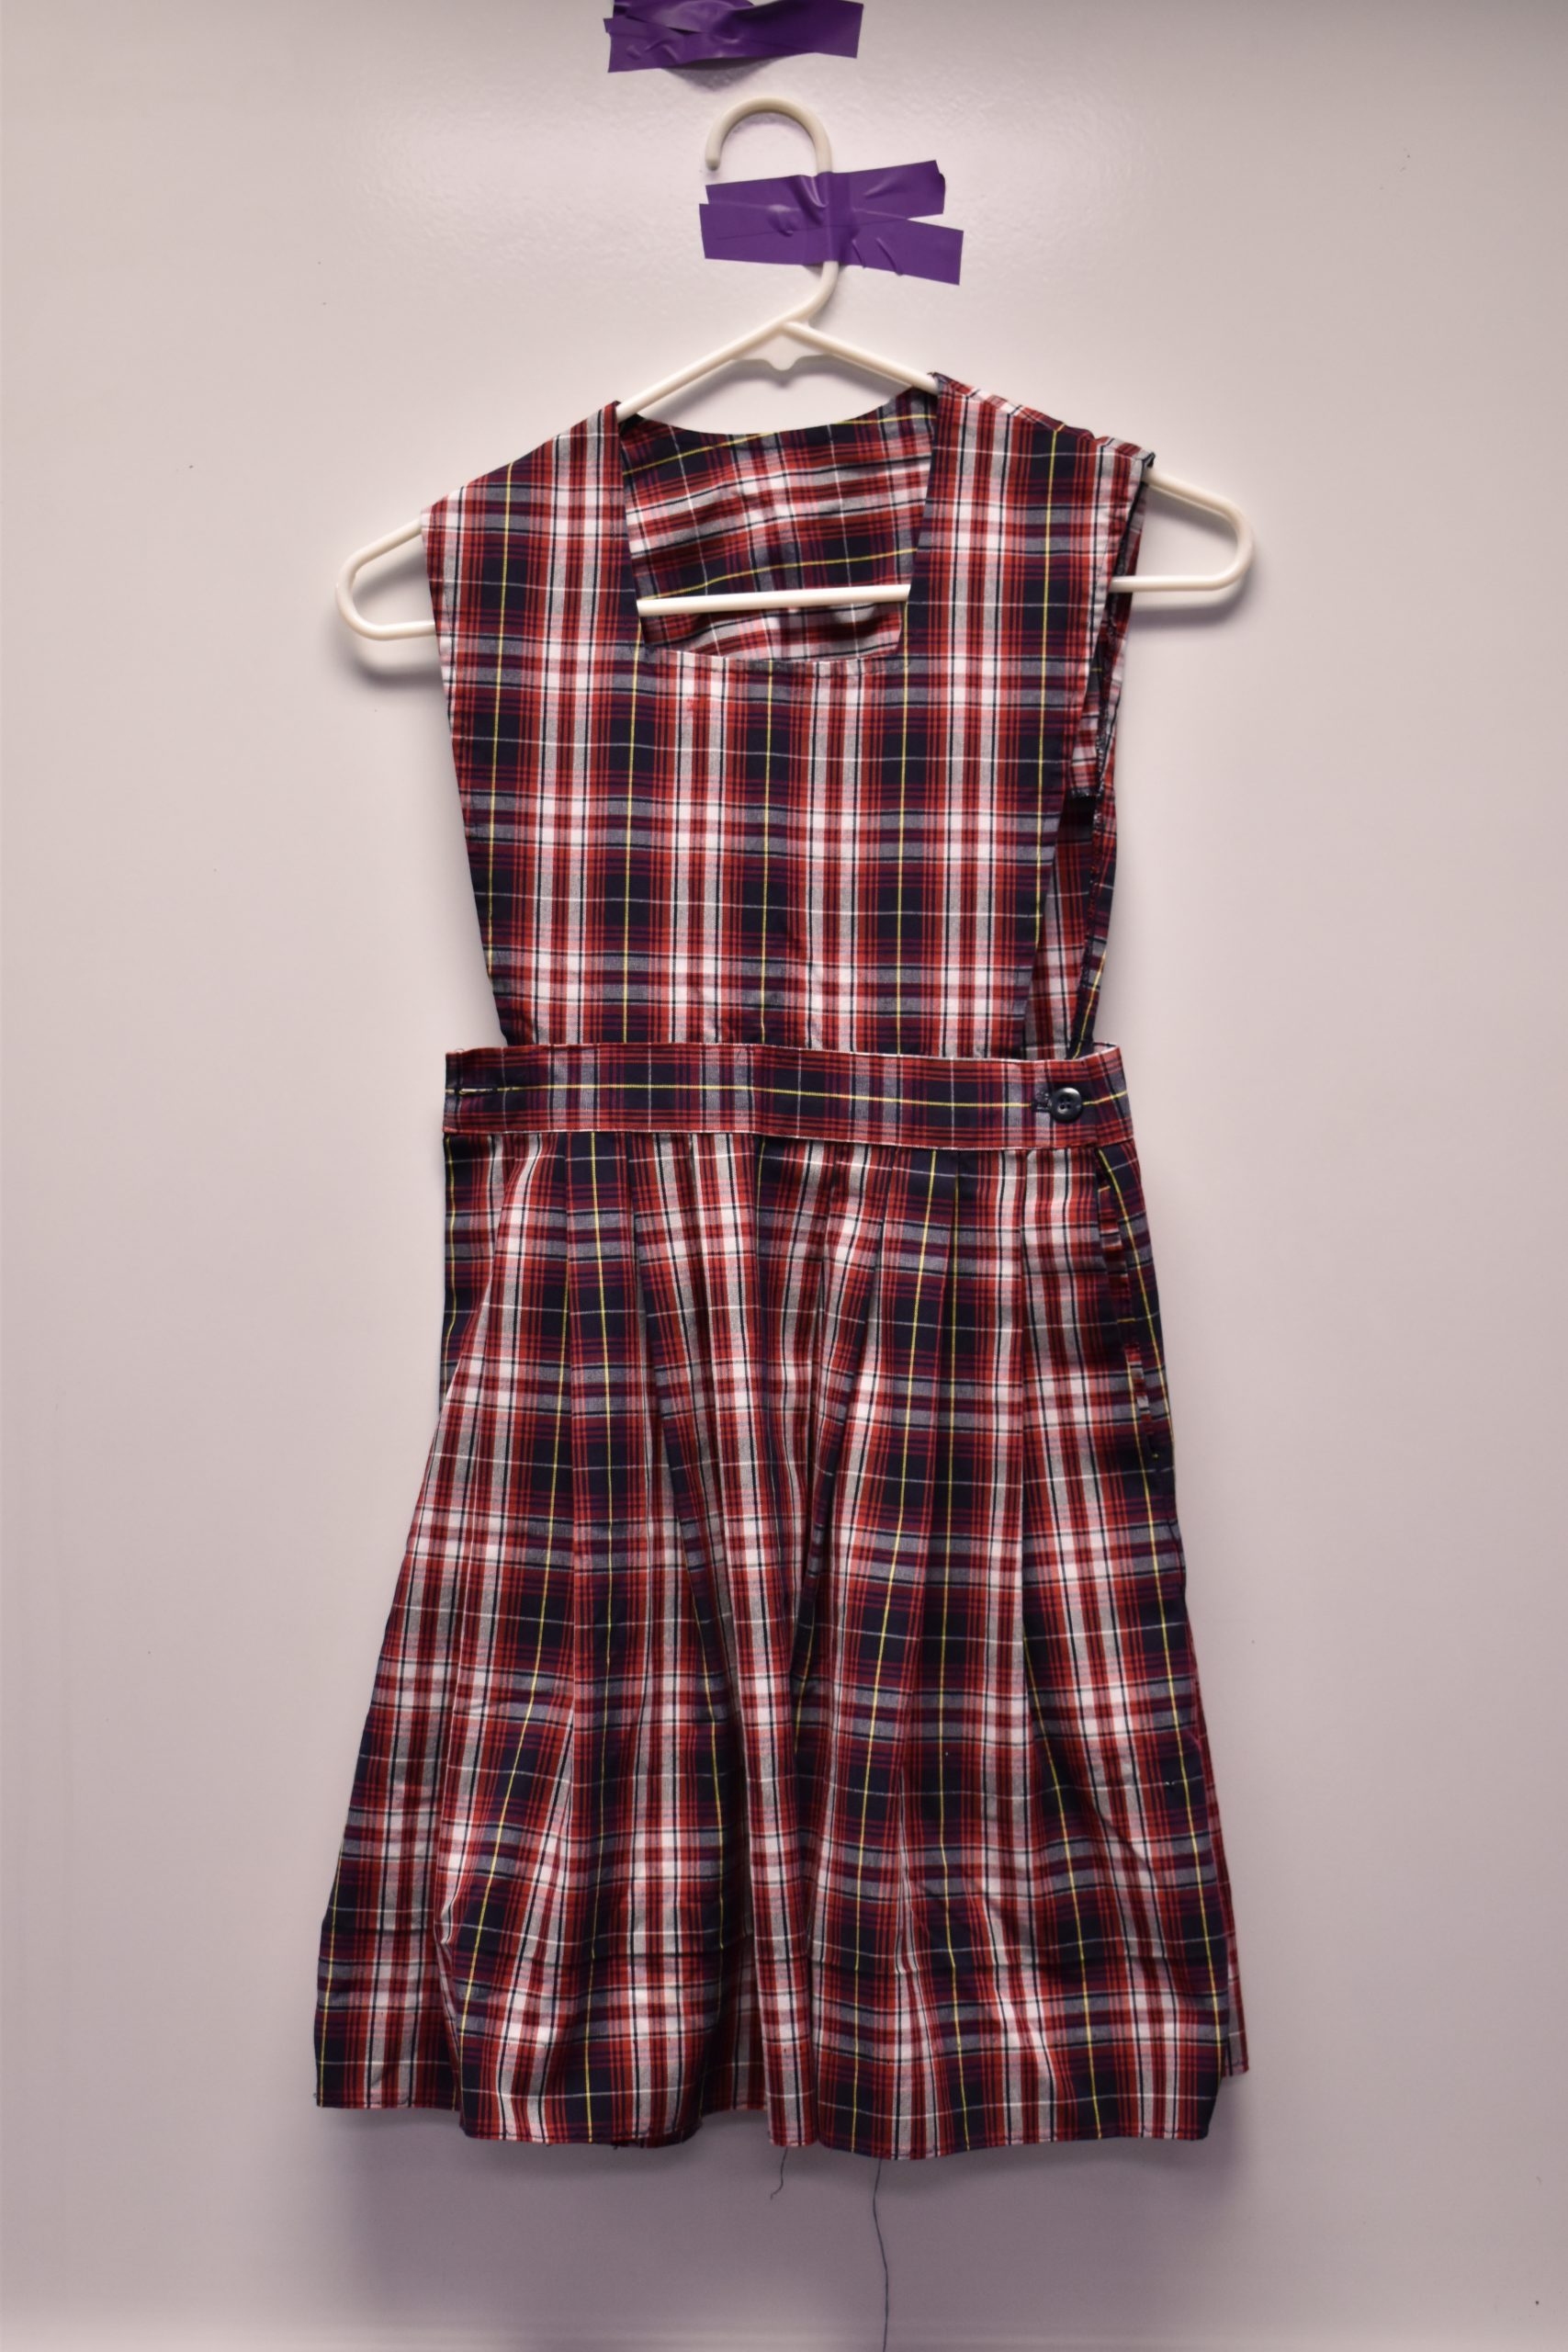 Christian Academy School System | Christian Academy of Louisville | Virtual Uniform Closet | Uniform | Elementary Girls Plaid Chapel Jumper